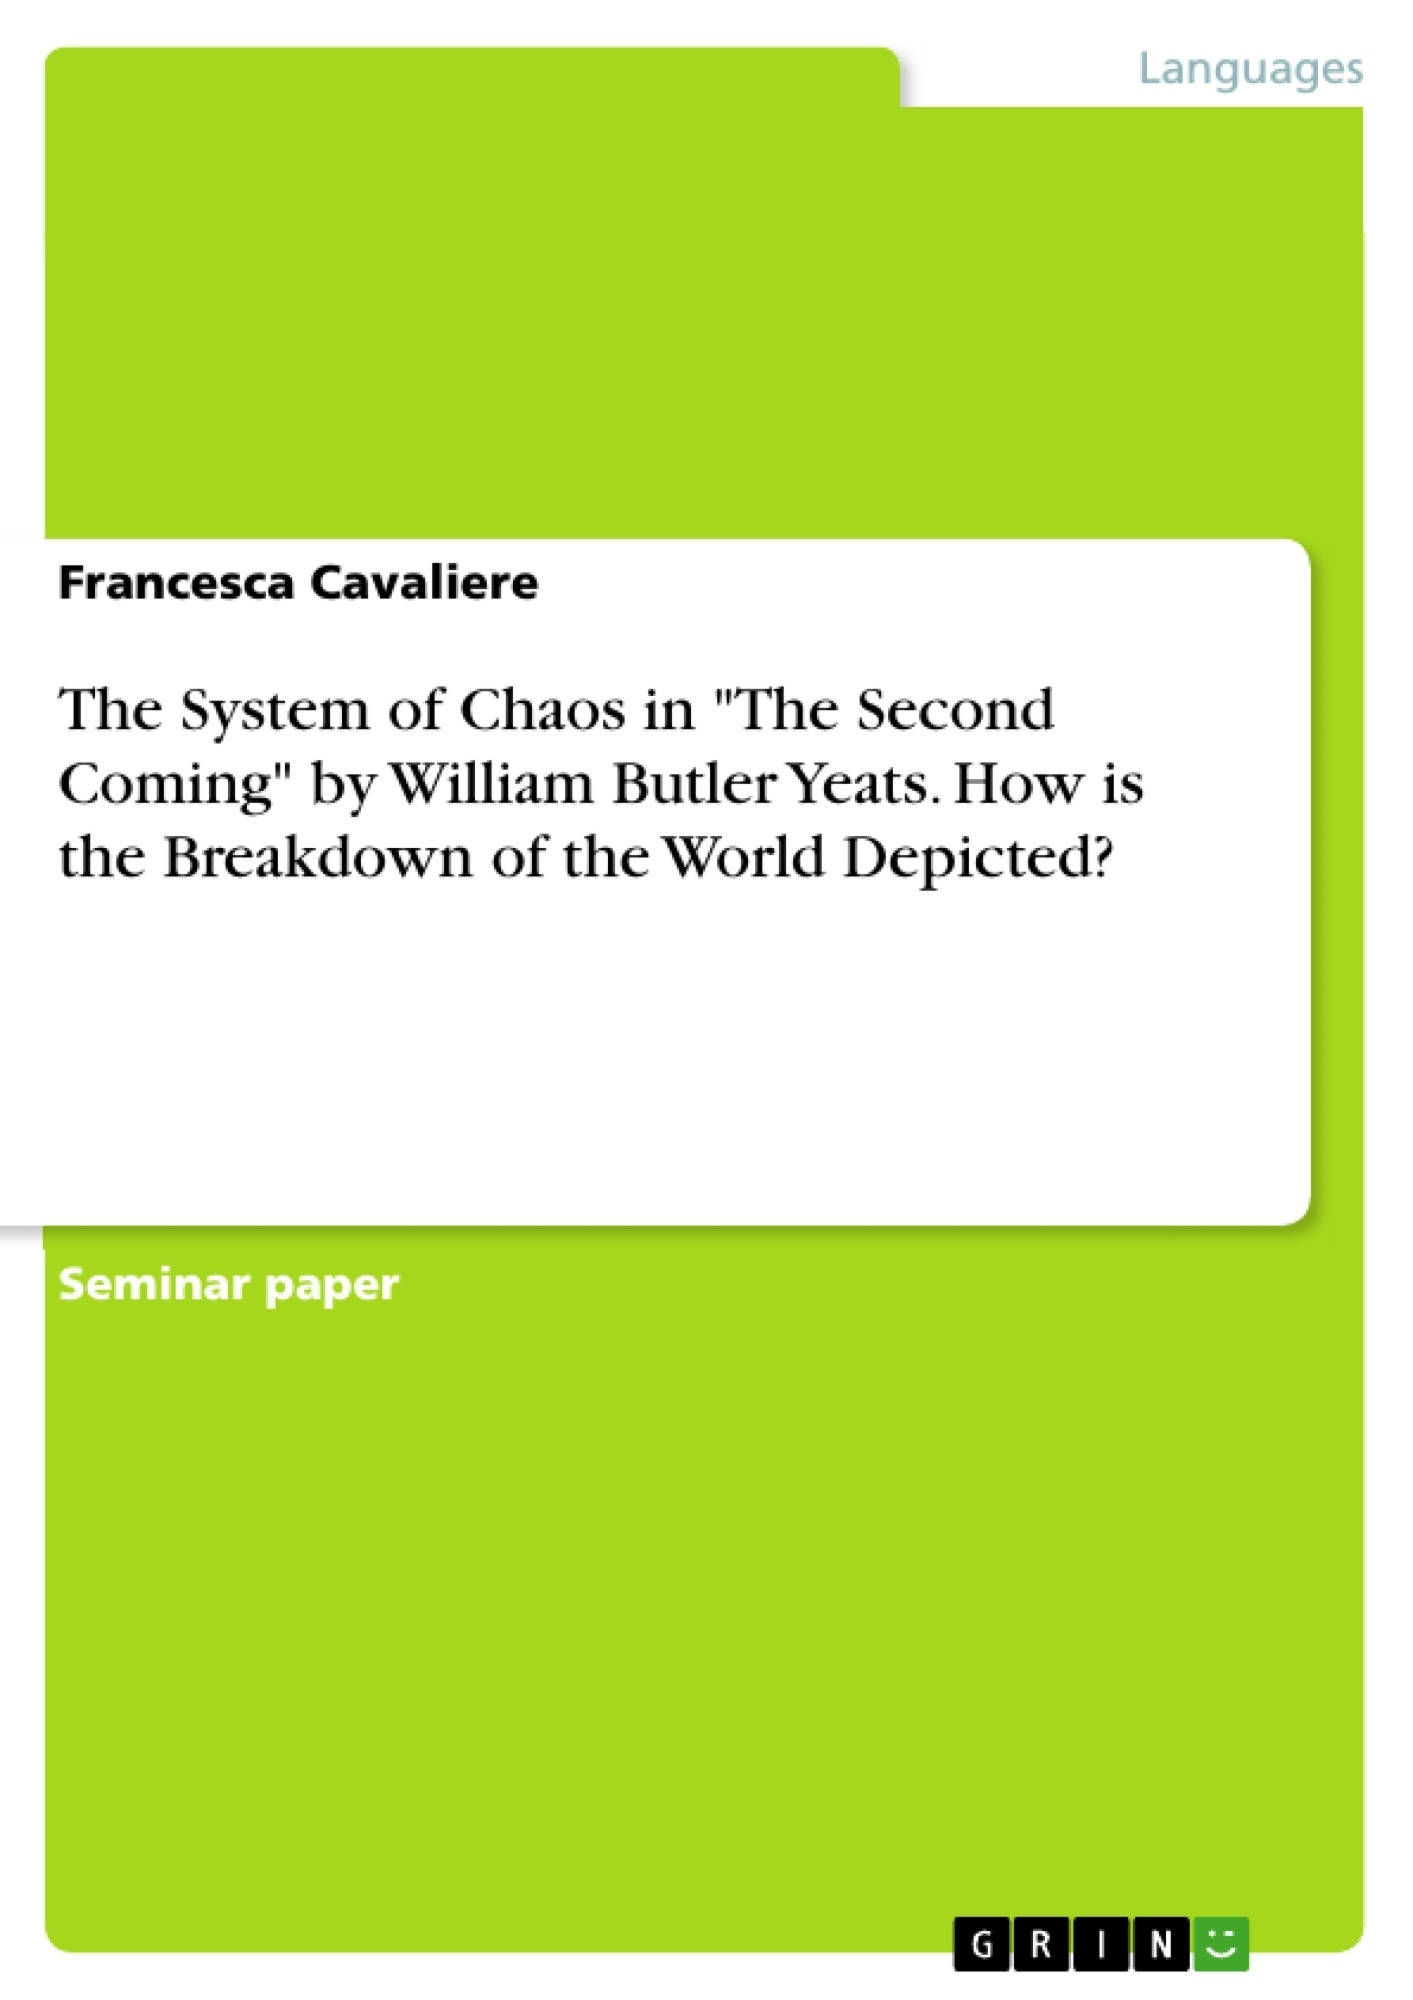 the system of chaos in the second coming by william butler yeats the system of chaos in the second coming by william butler yeats publish your master s thesis bachelor s thesis essay or term paper